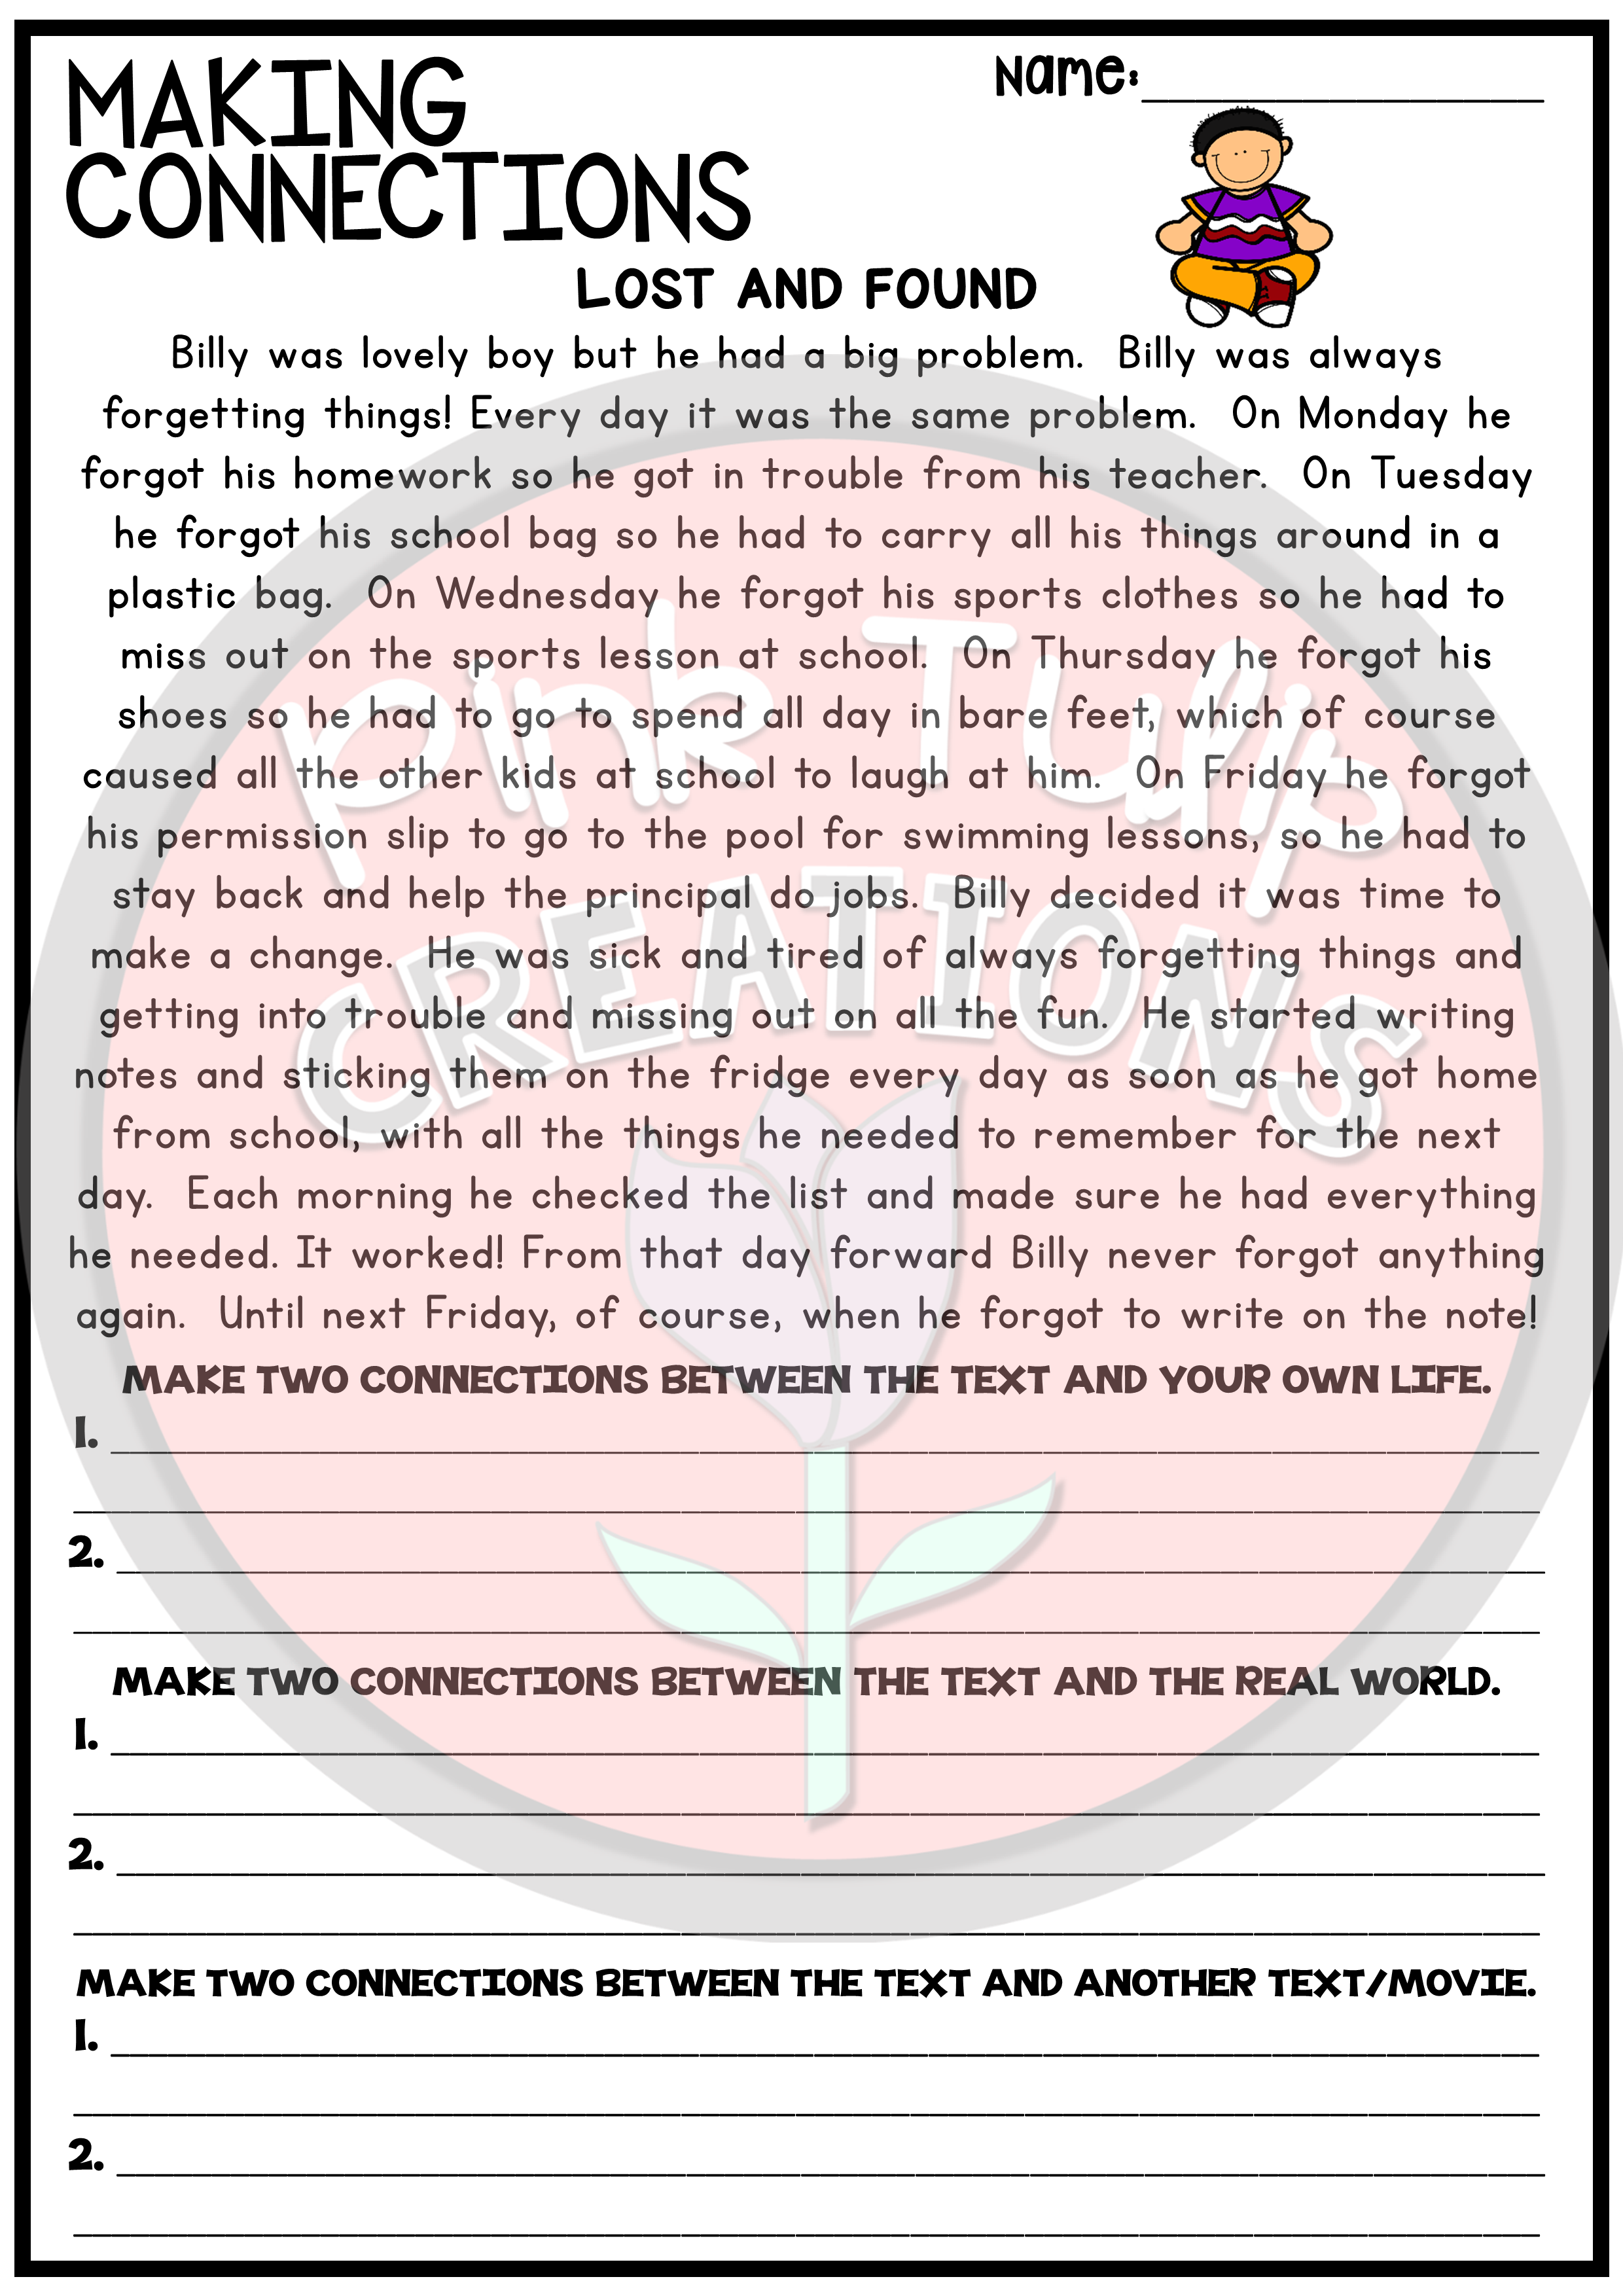 Worksheets Making Connections Worksheet making connections reading worksheet pack ela 6 pinterest each contains a passage with questions asking students to make two text self world